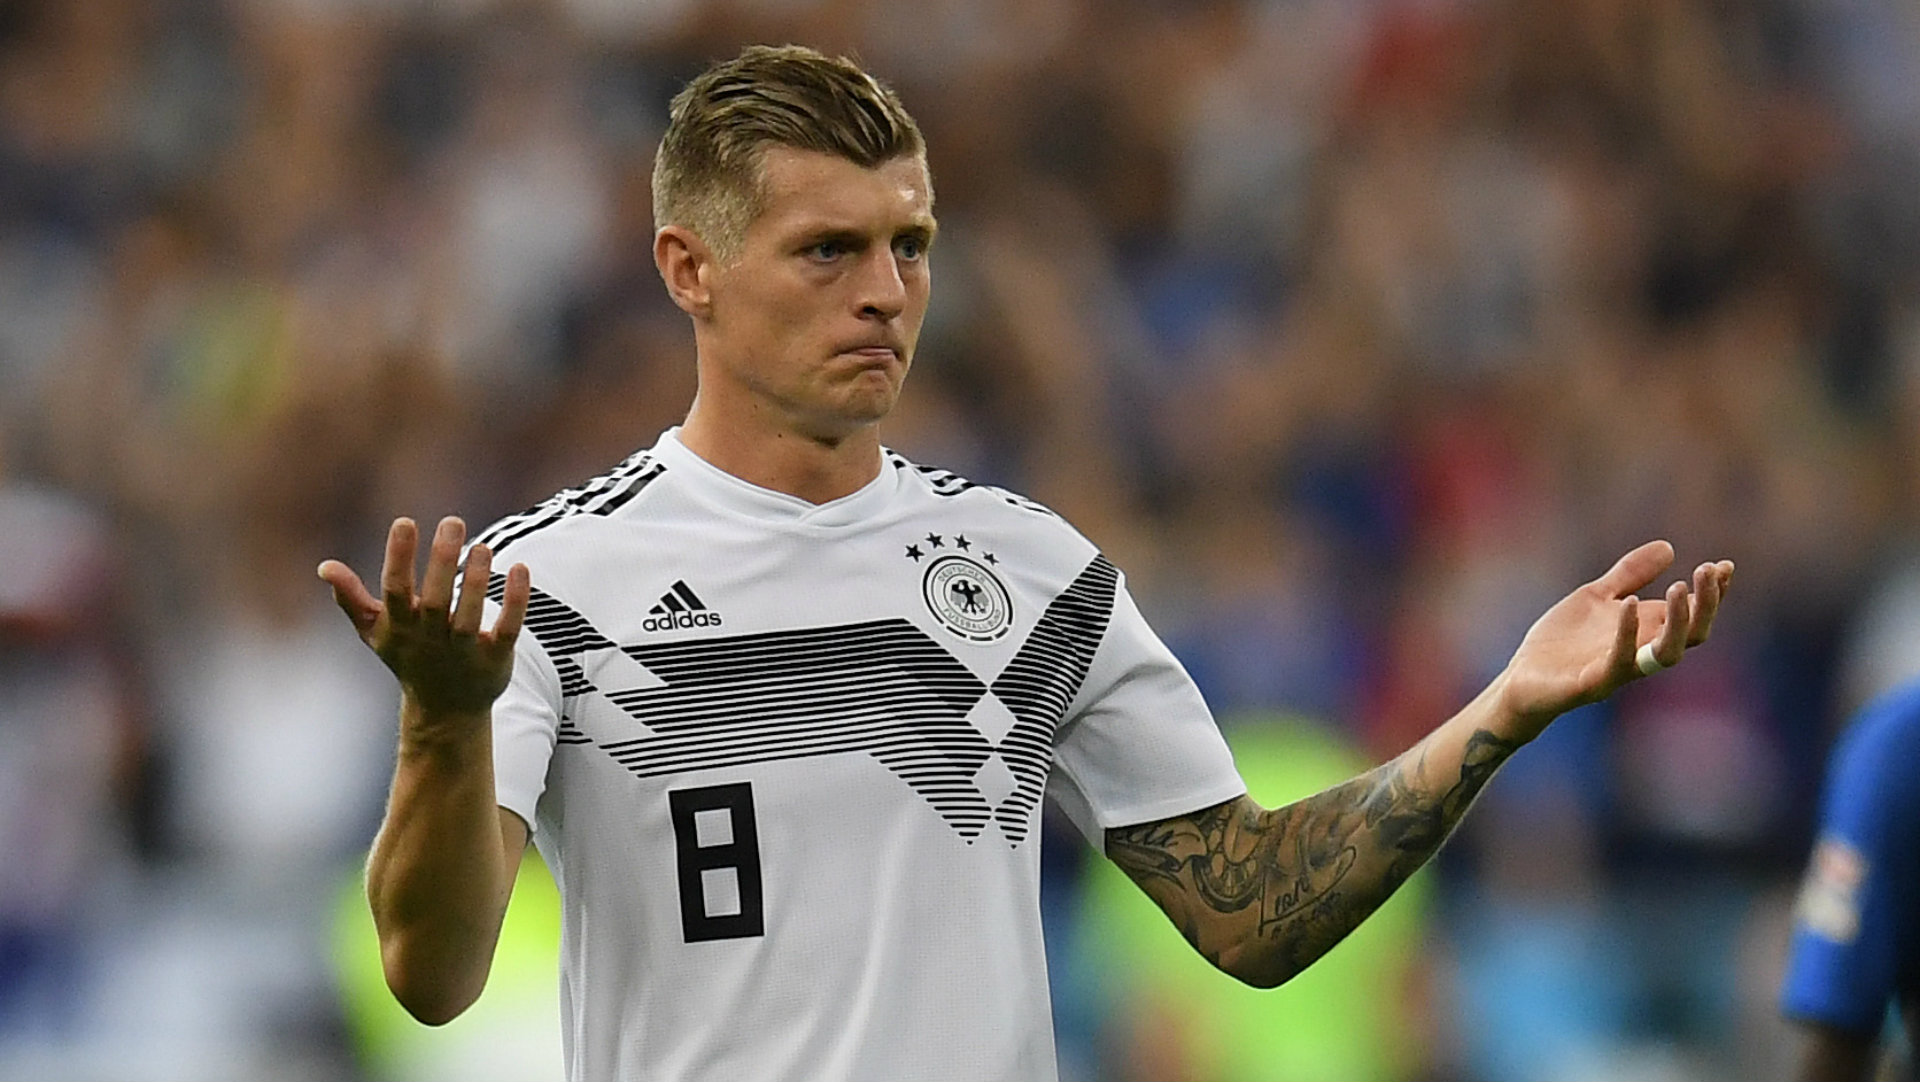 Germany stalwart Kroos mulls possibility of retirement after Euro 2020